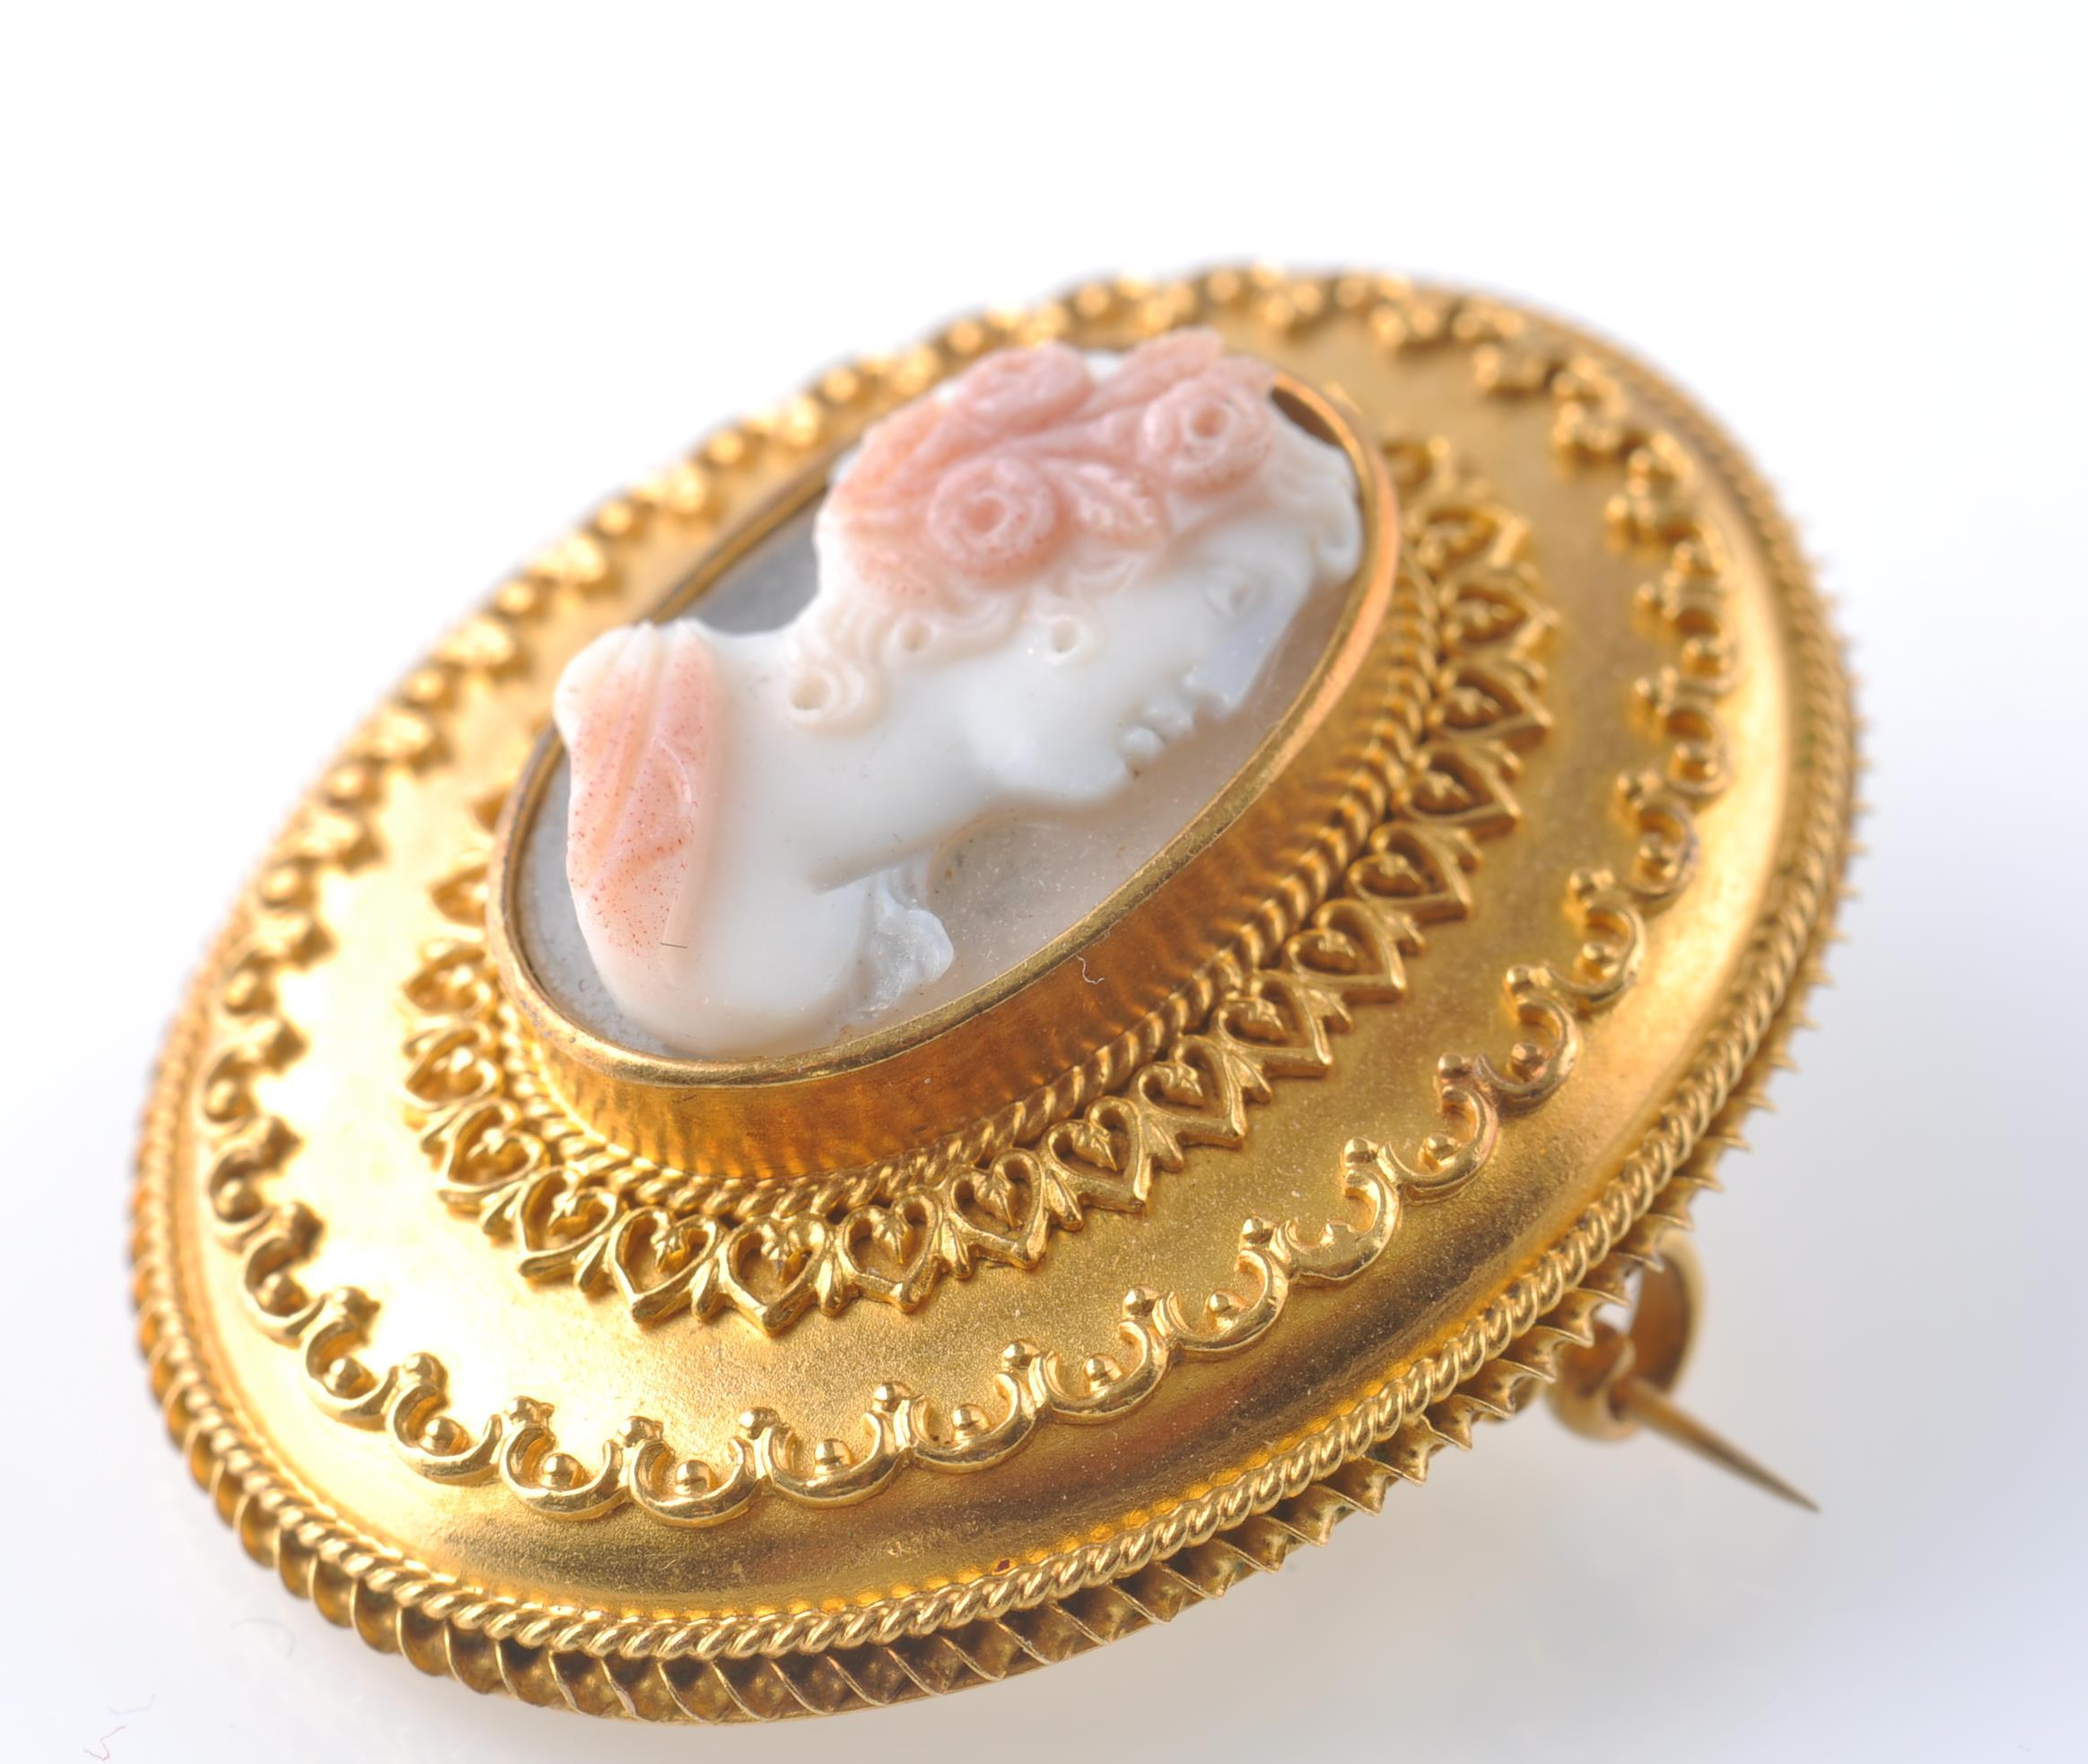 VICTORIAN 19TH CENTURY GOLD AND HARDSTONE CAMEO BR - Image 3 of 4